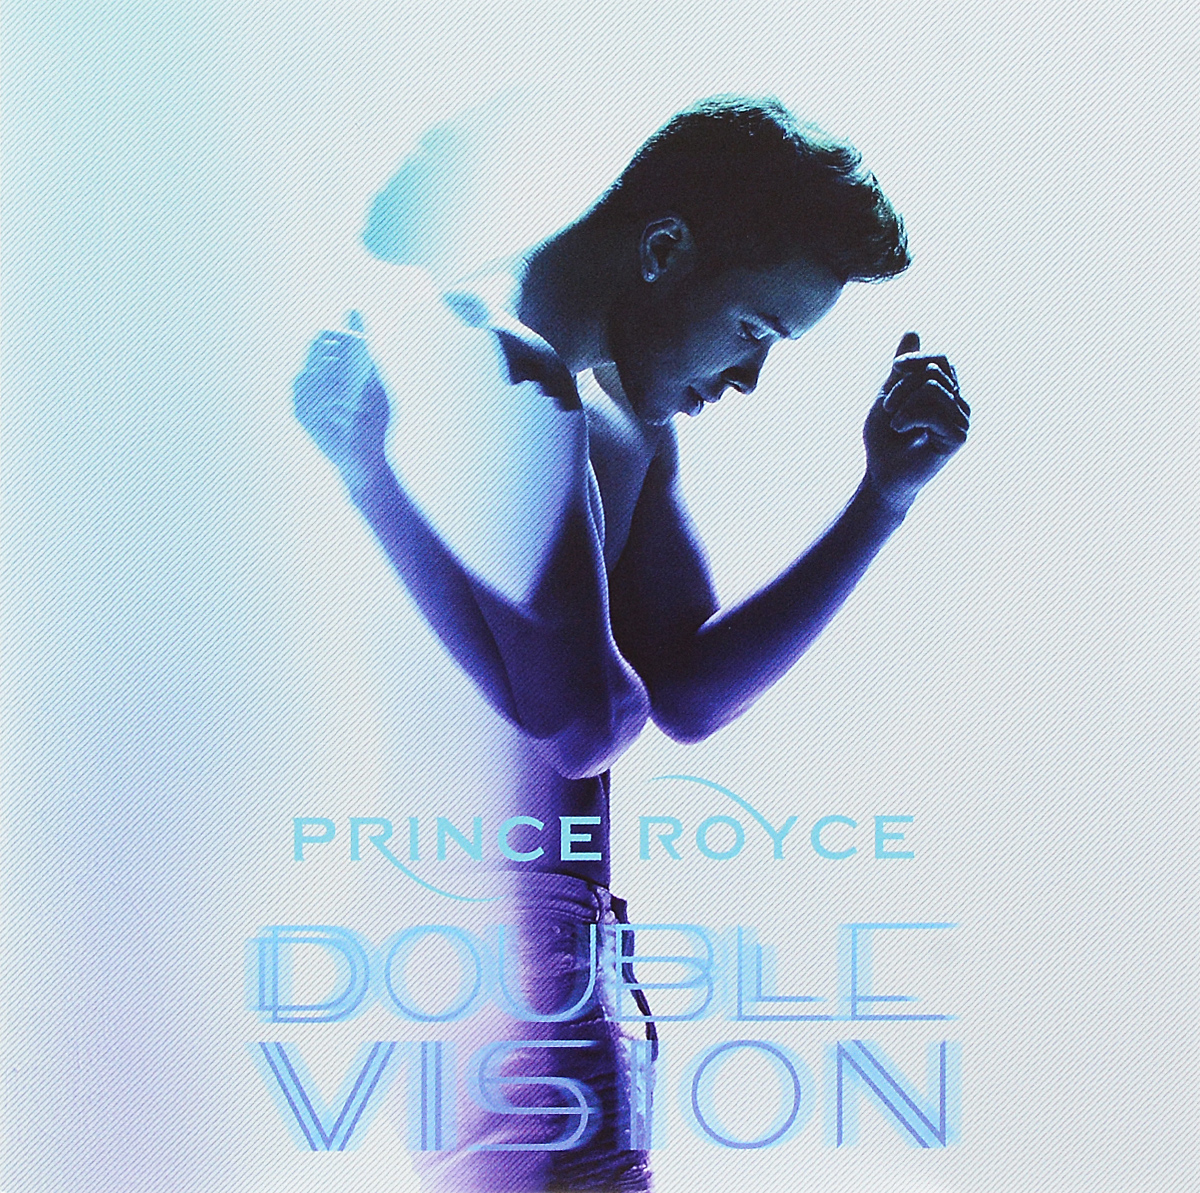 Prince Royce Prince Royce. Double Vision. Deluxe Edition nokia n73 music edition